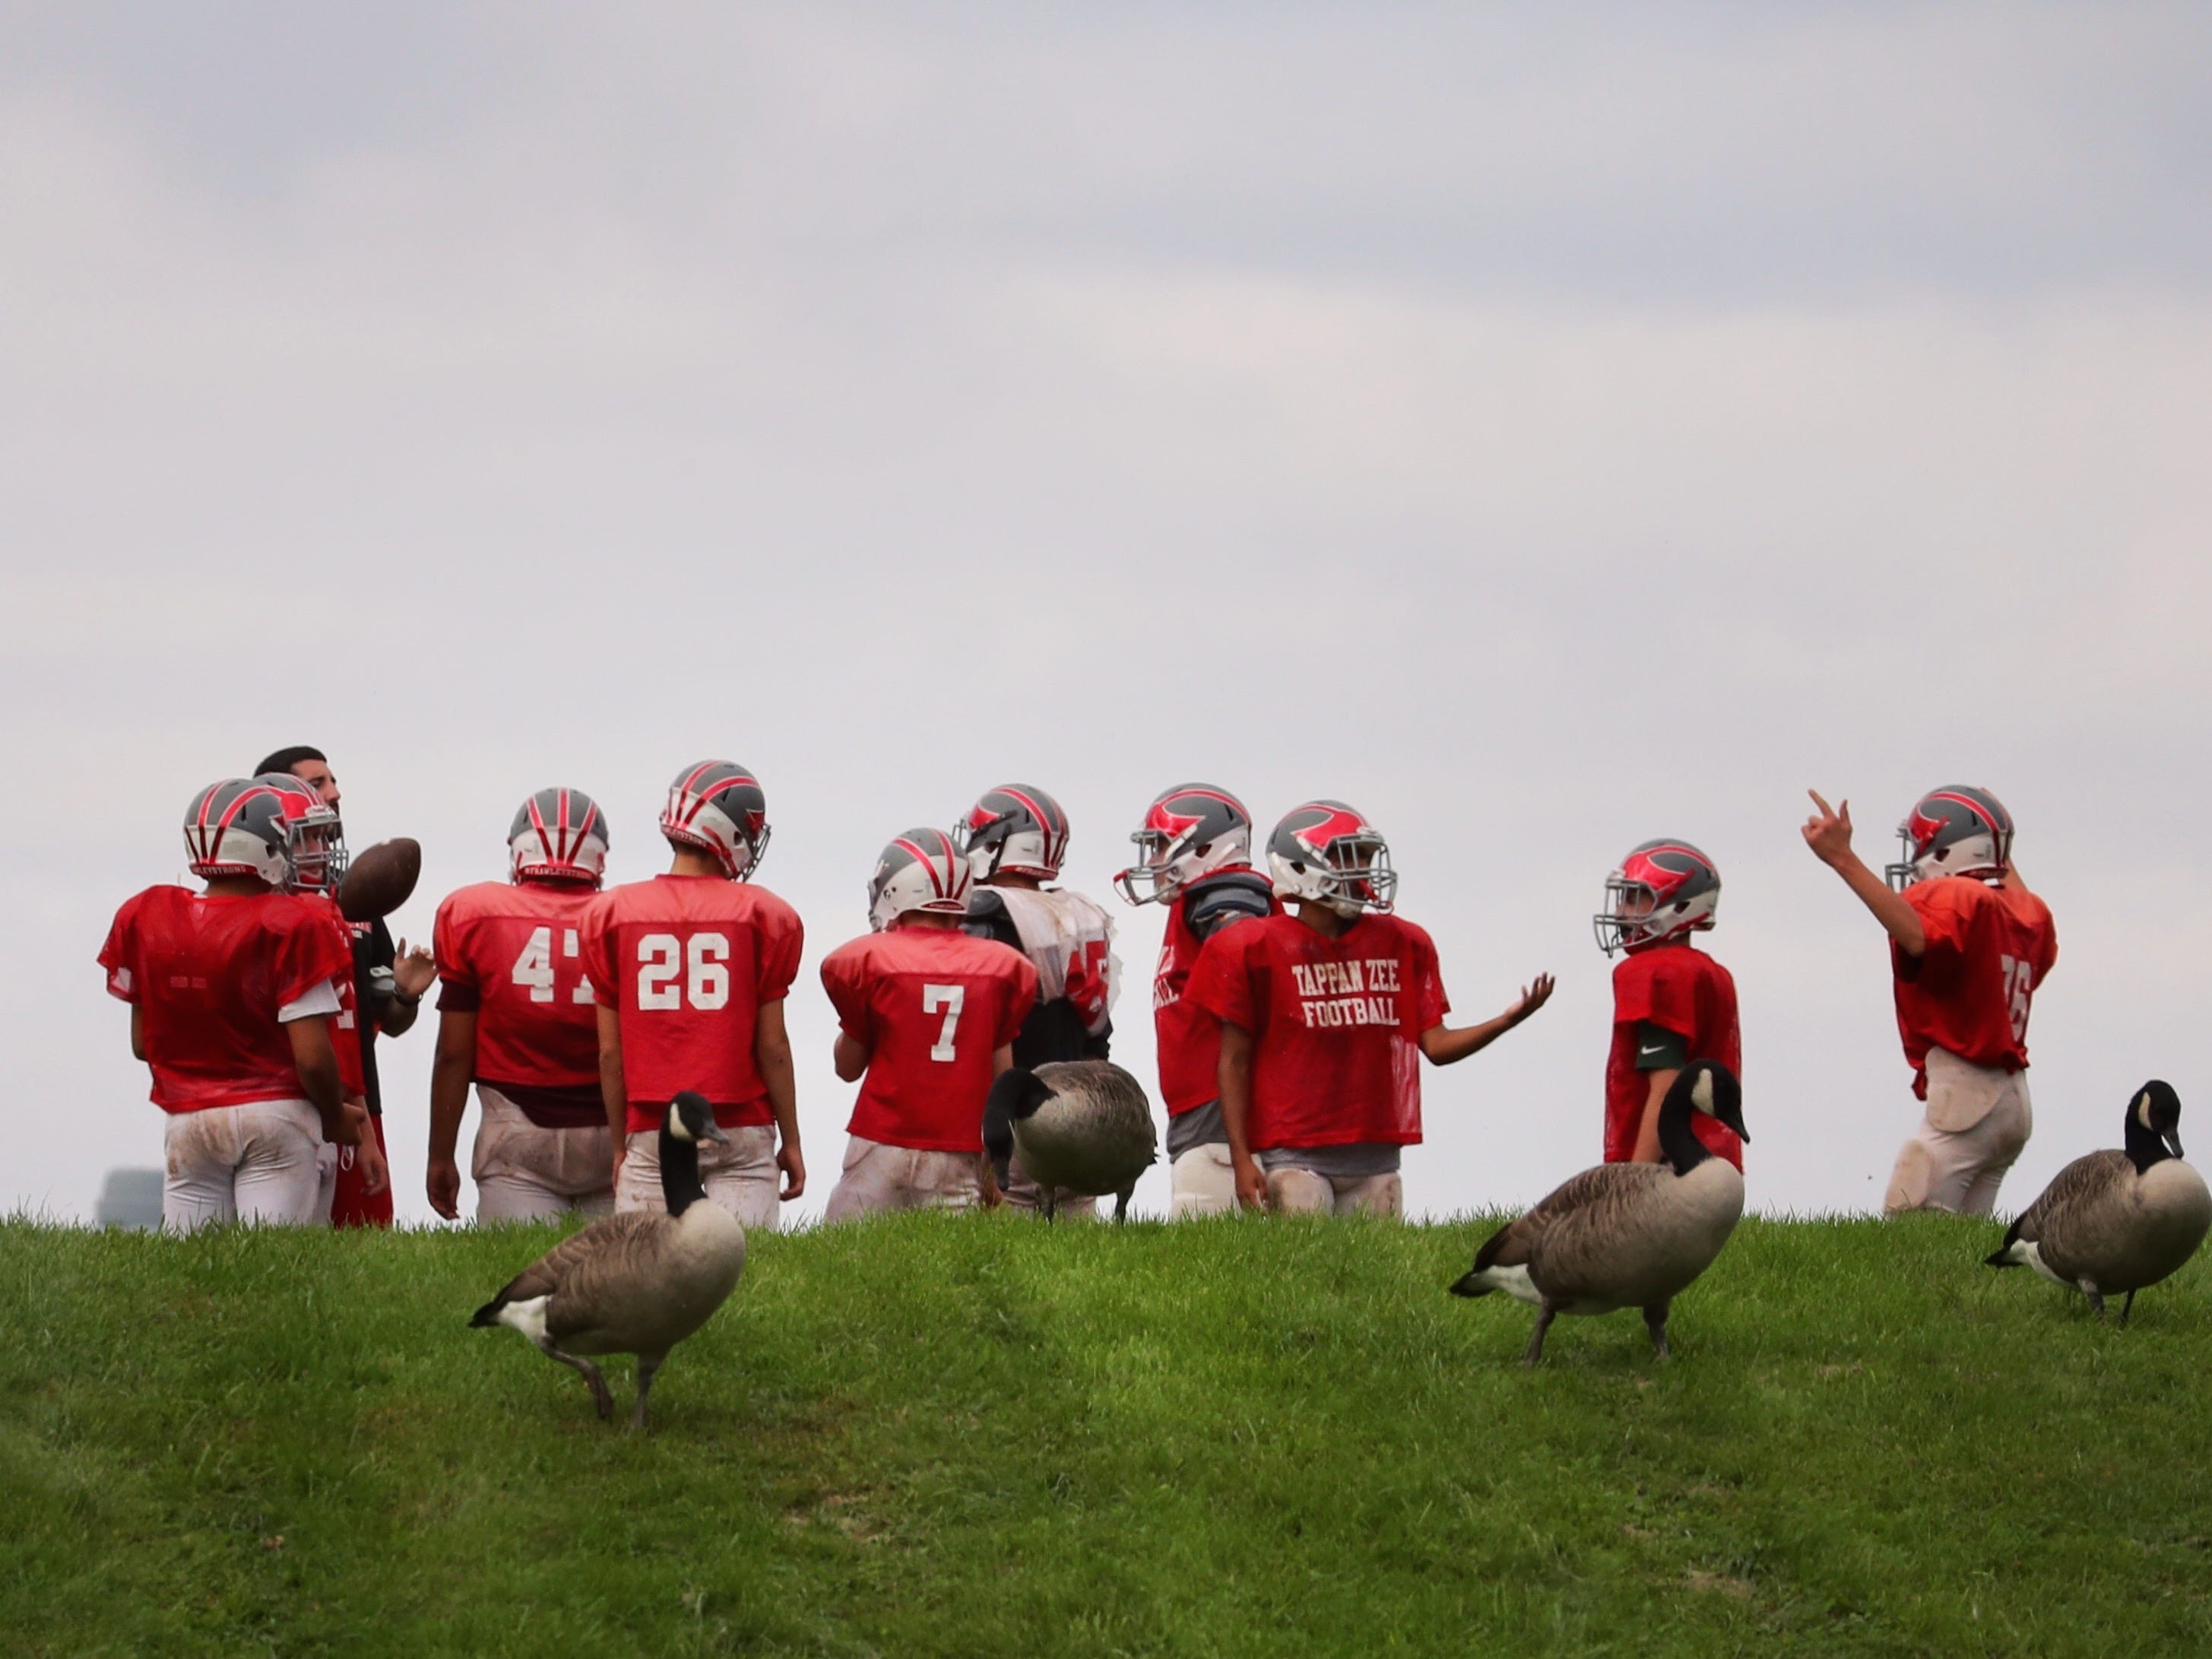 Canada geese make way for football practice at Tappan Zee High School